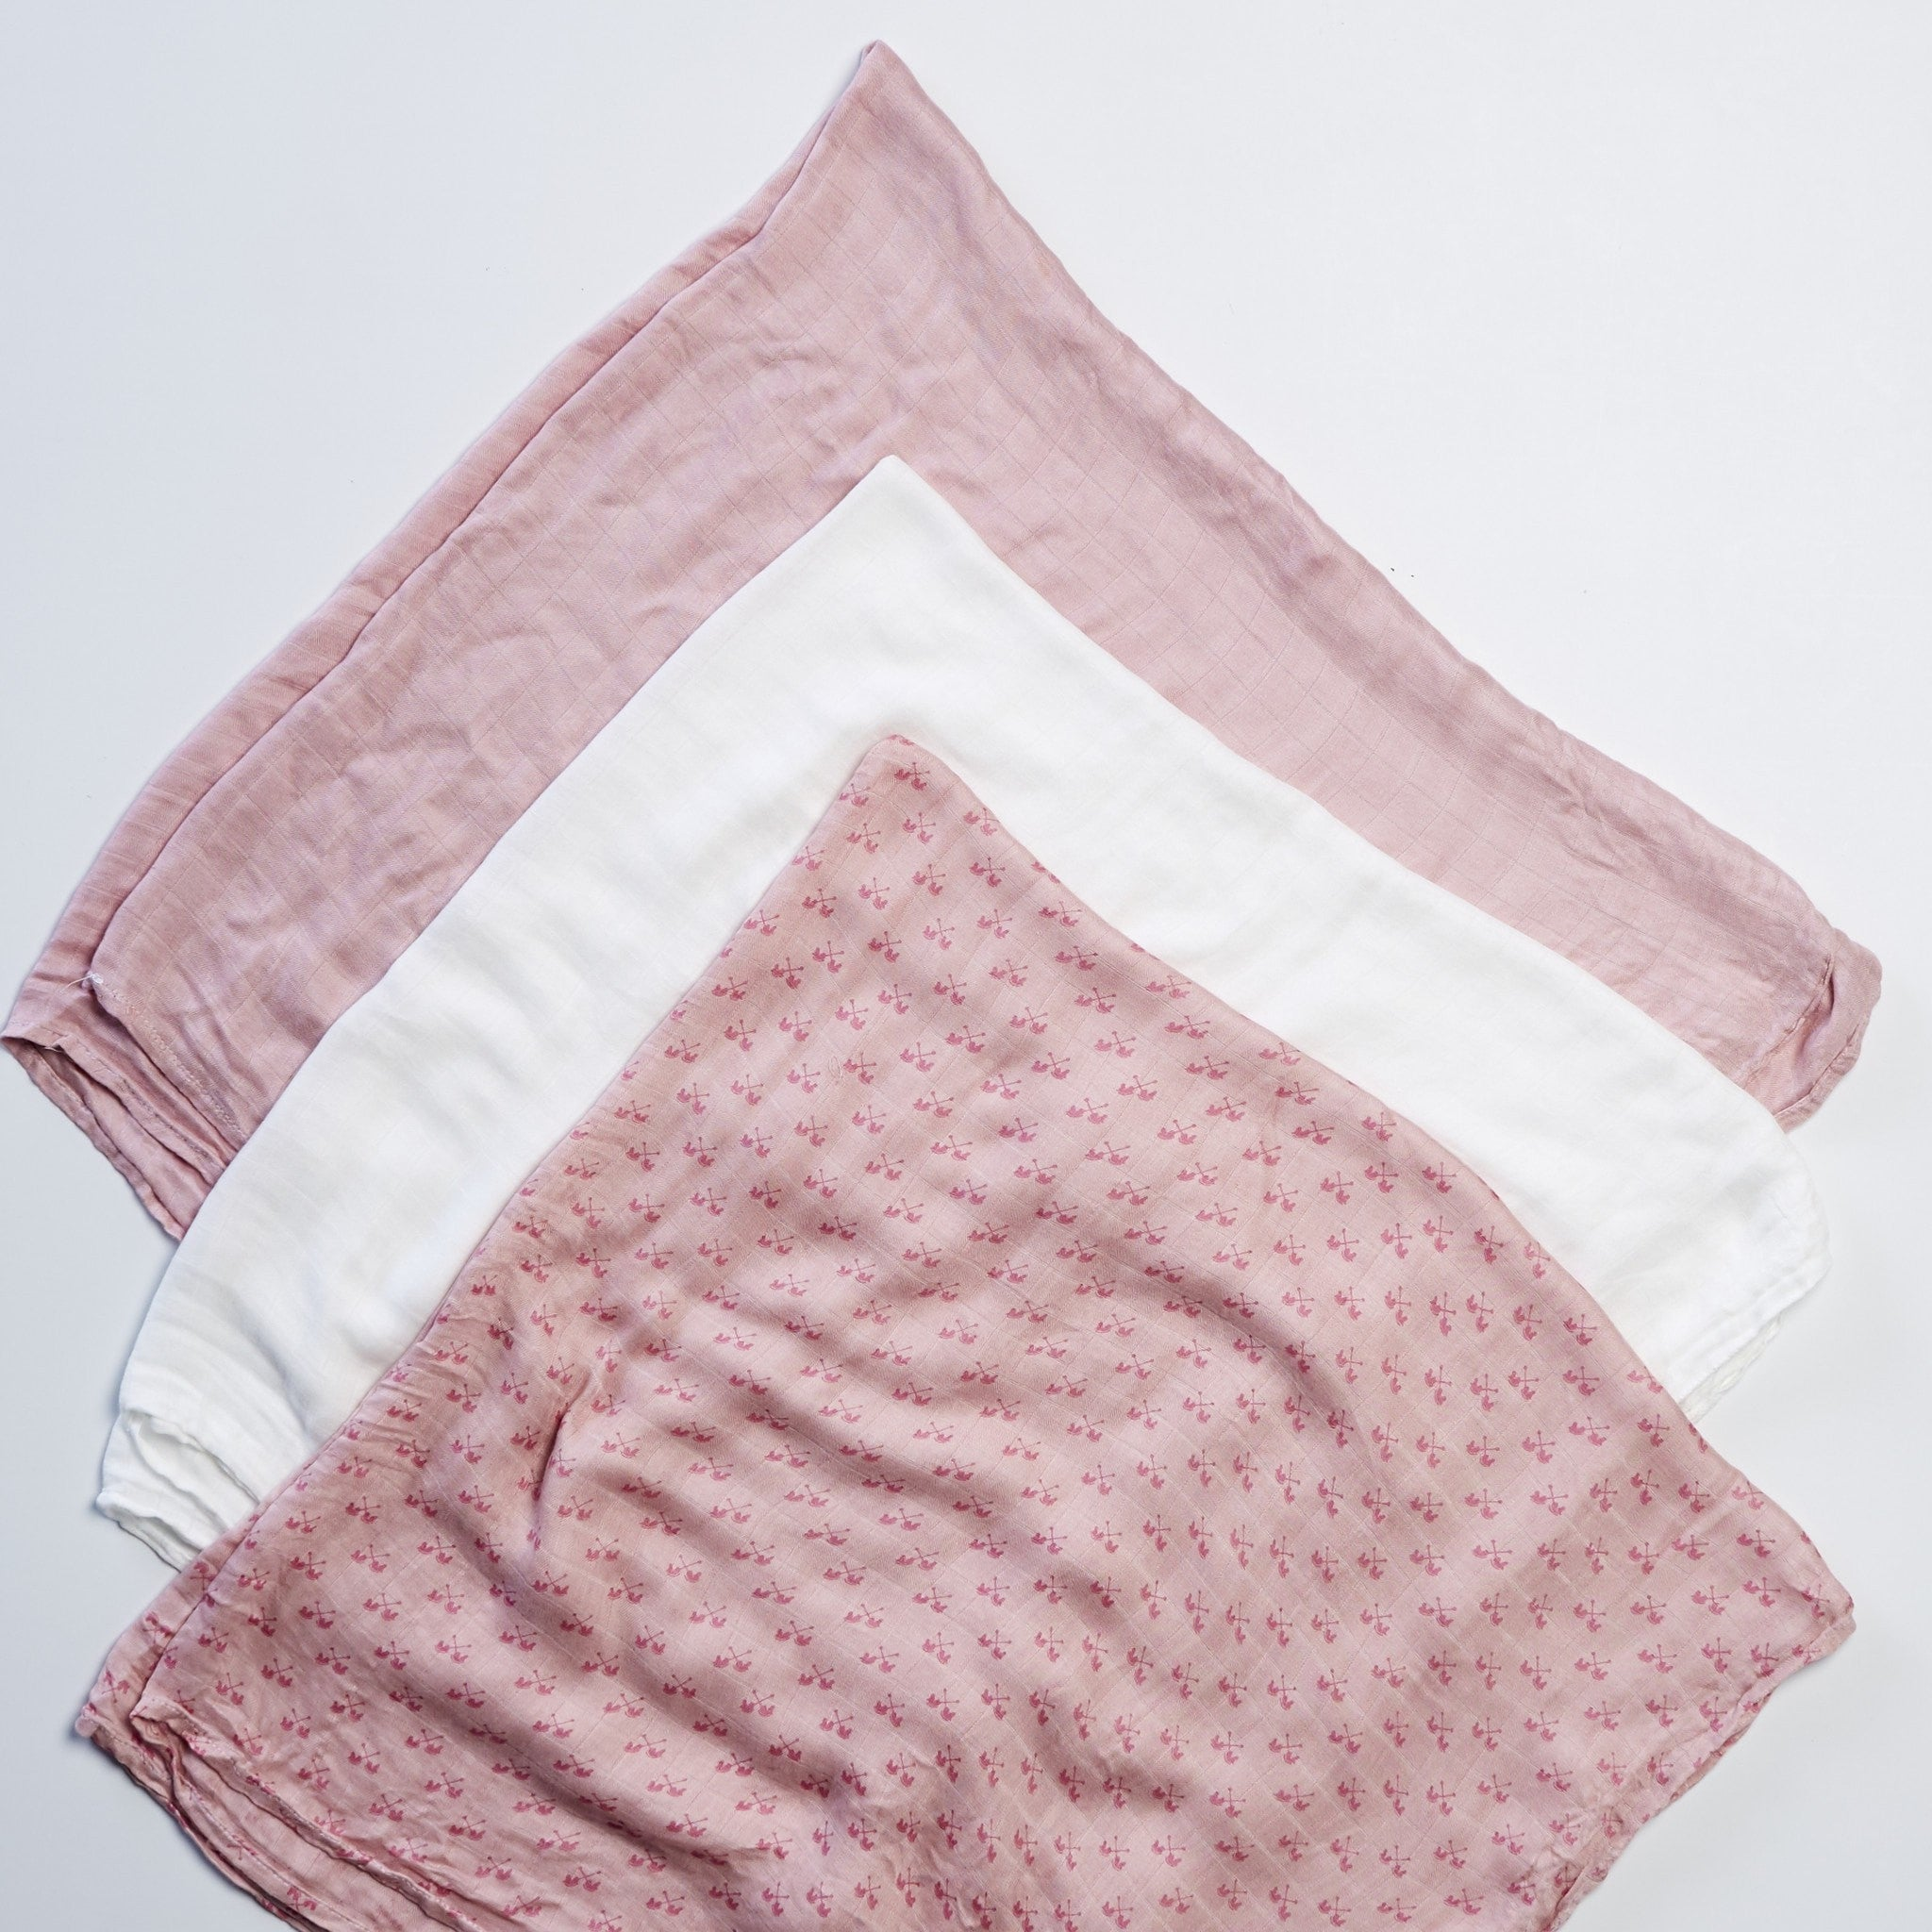 Massive Muslin Cloths For Babies And Toddlers Parental